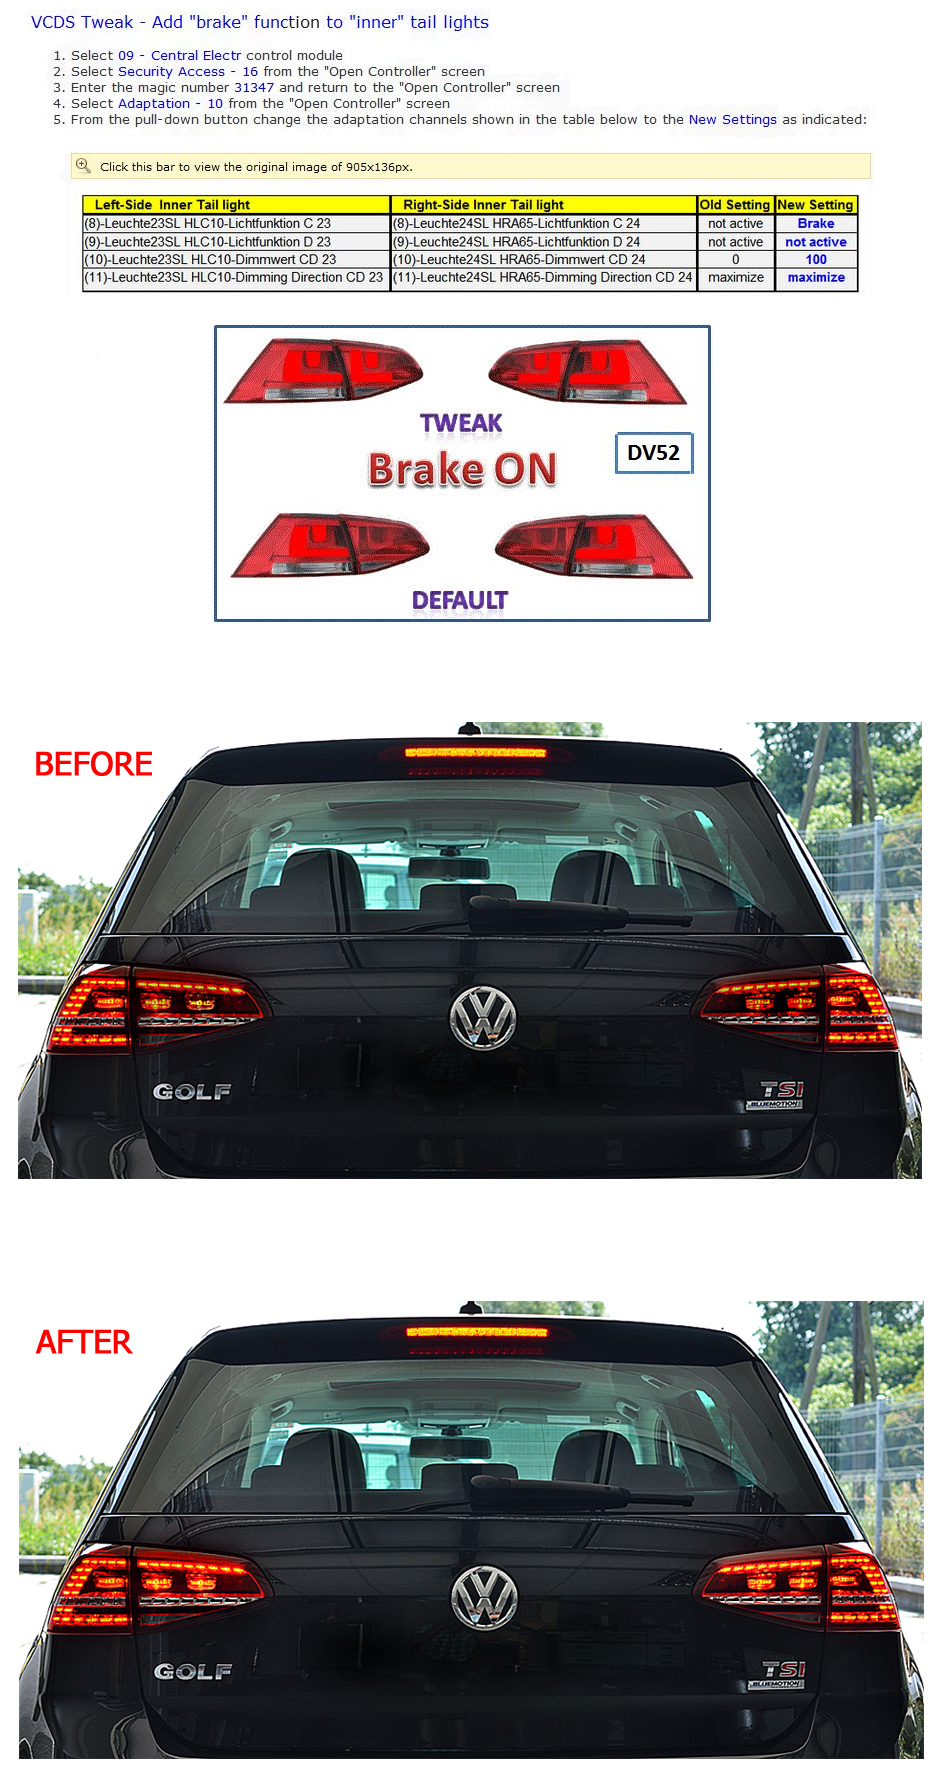 Support Vw Touran Wiring Diagram Pdf Golf Mk 7 Led Tailights How To Add Brake Function Inner Lights Coding Instructions